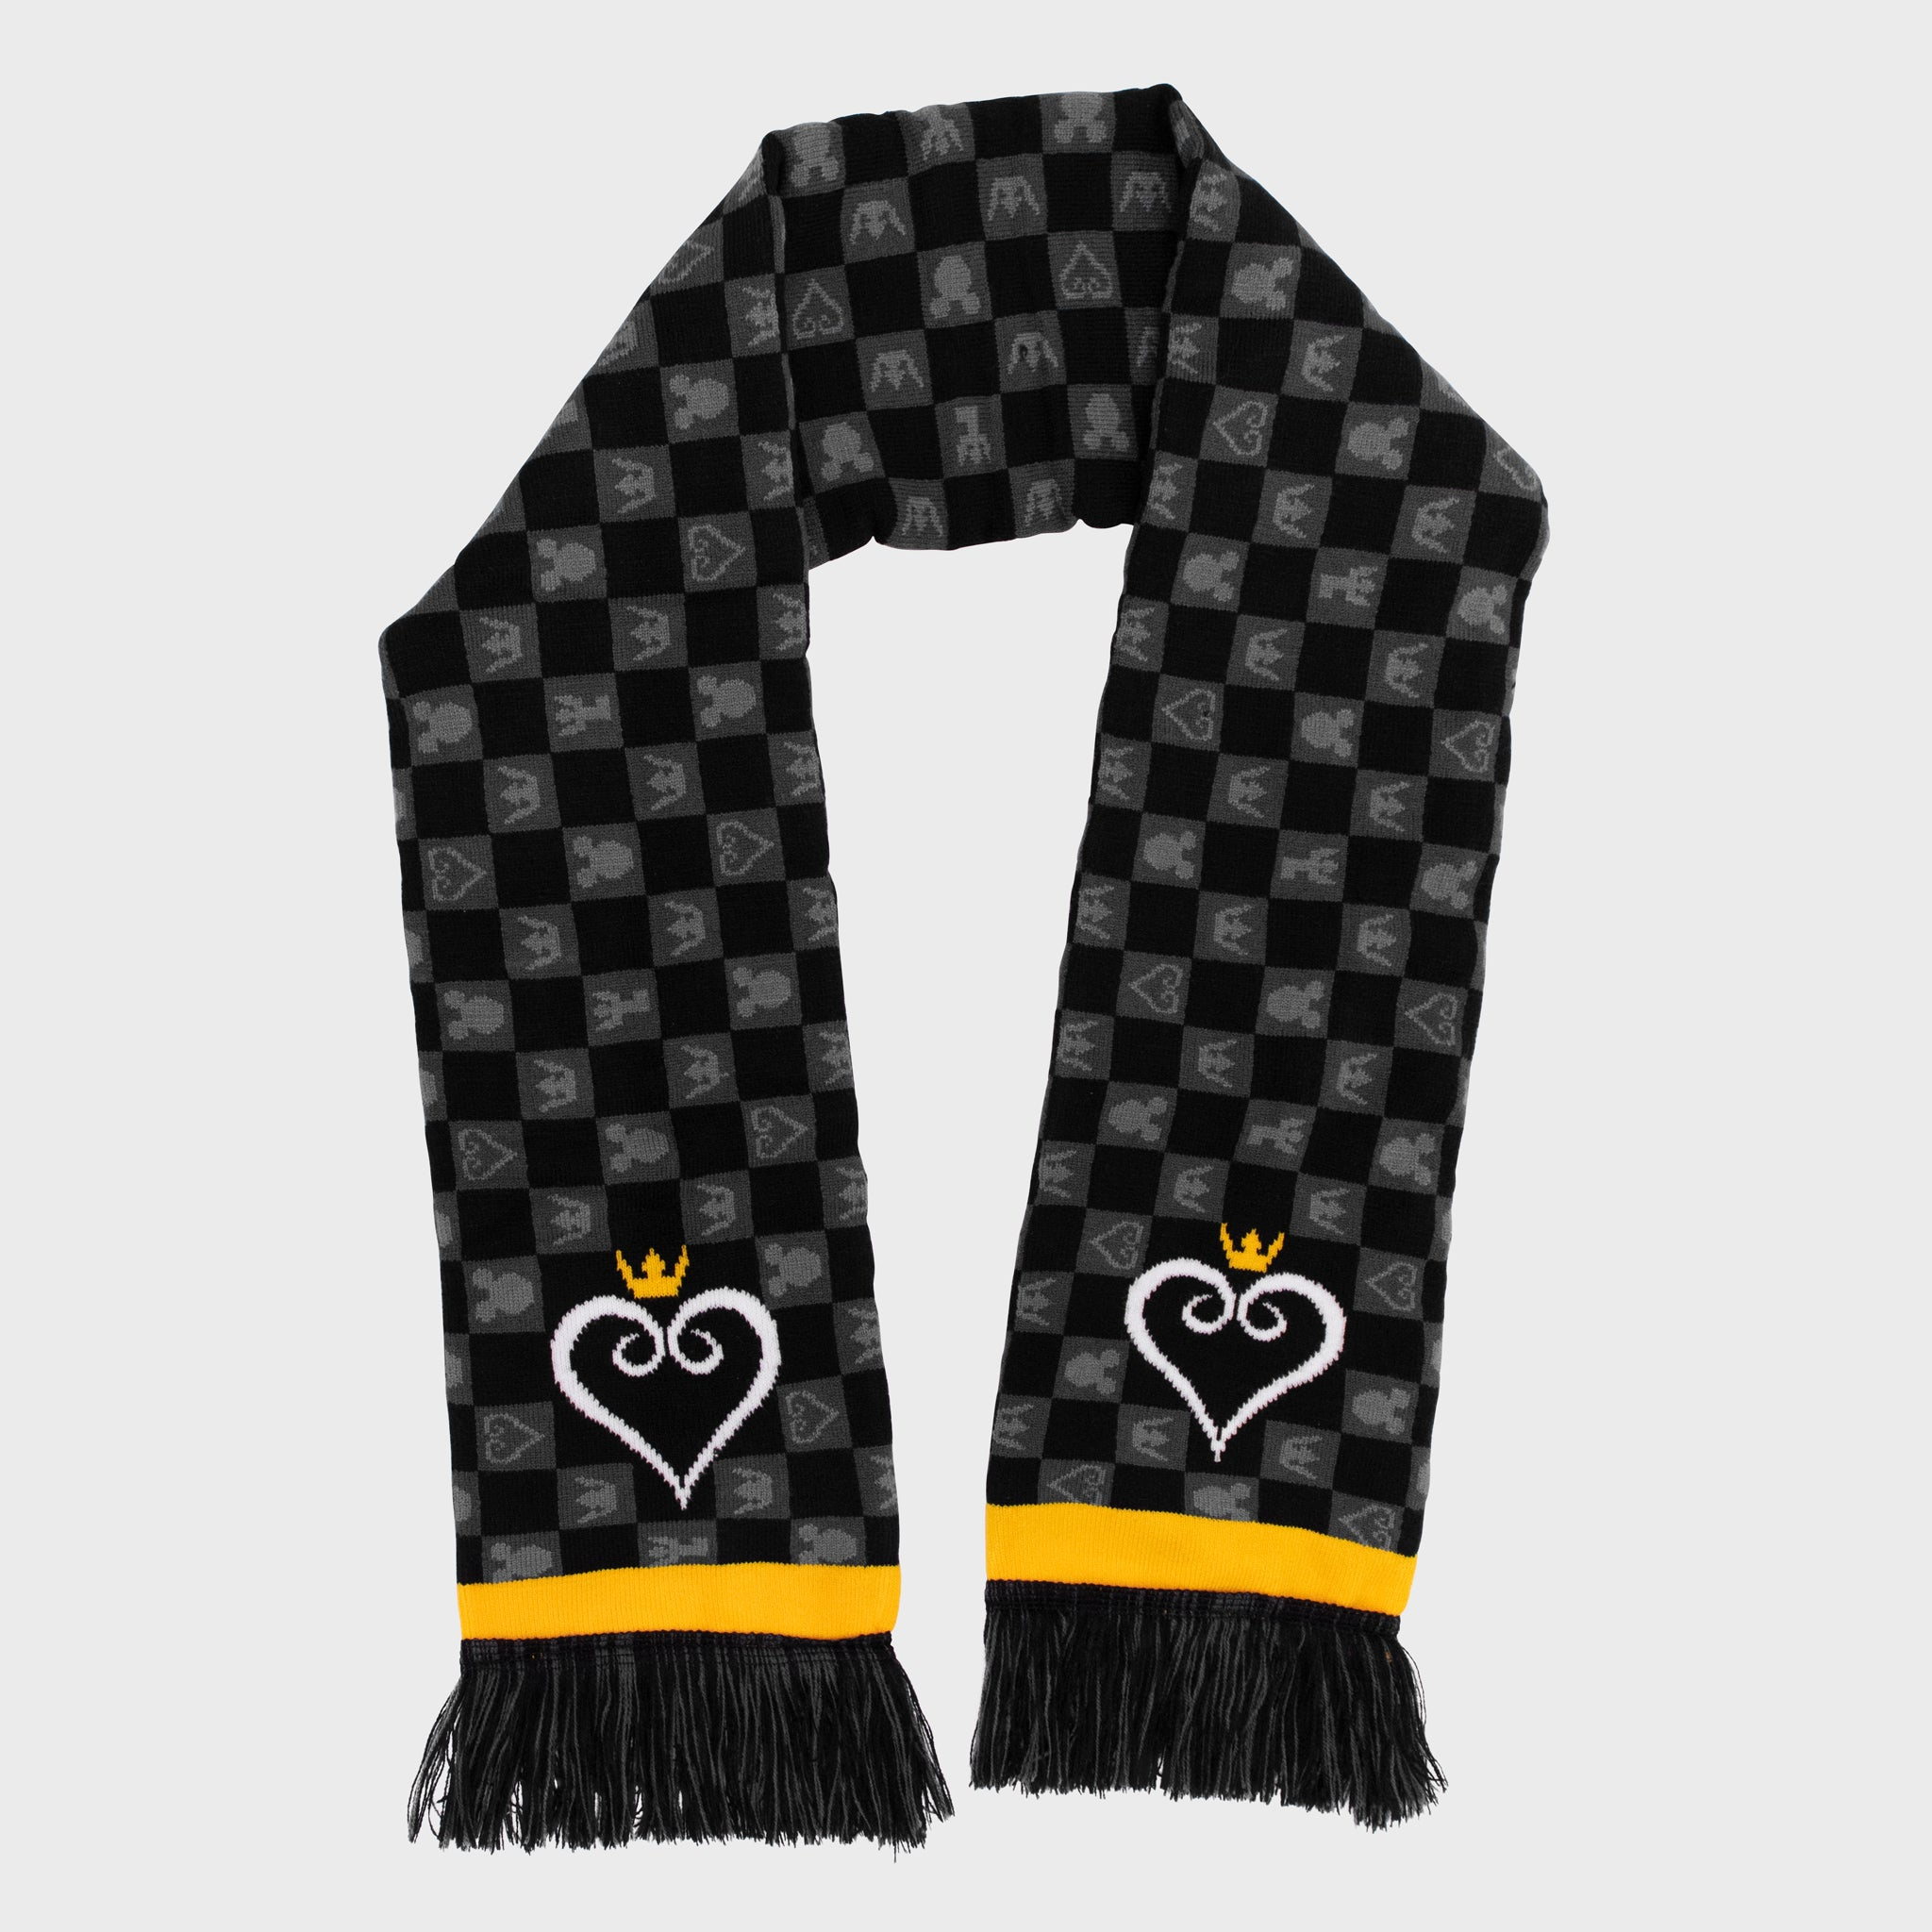 kingdom hearts disney square enix gaming video game collector box accessories exclusive collectible scarf winter cold culturefly